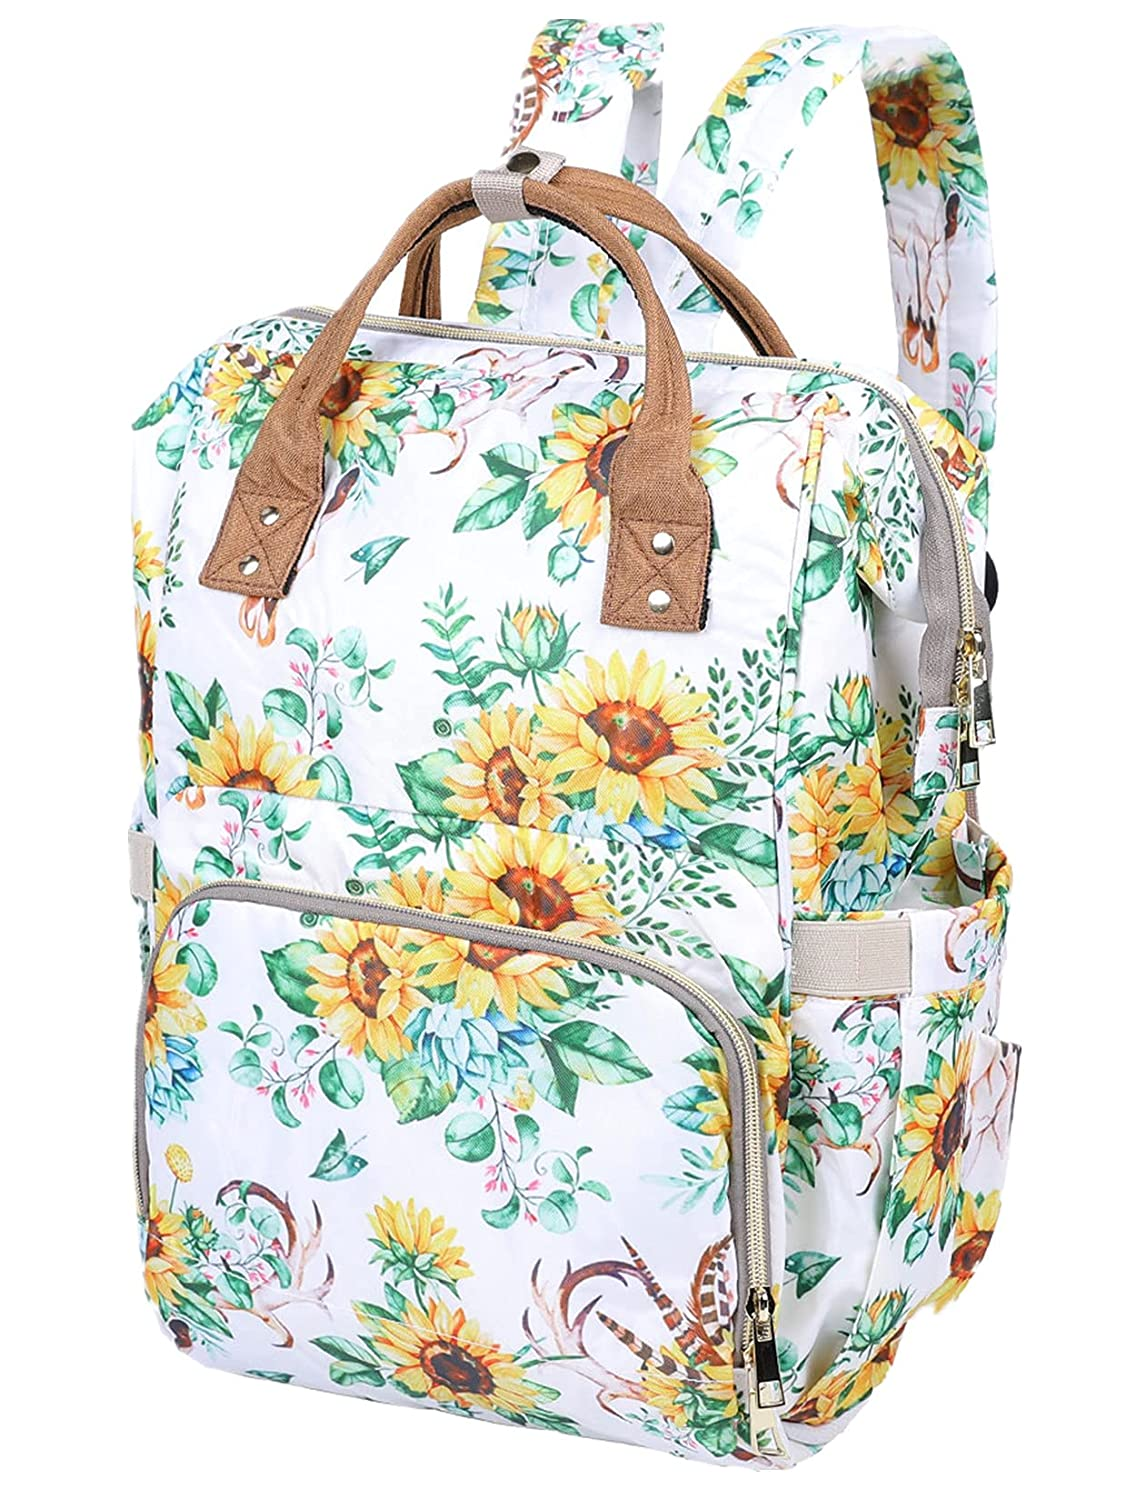 Trymall Diaper Backpack Baby, Mom Travel Handbag with Thermal Pockets, Waterproof Multifunction Large Nappy Bags for Boys Girls